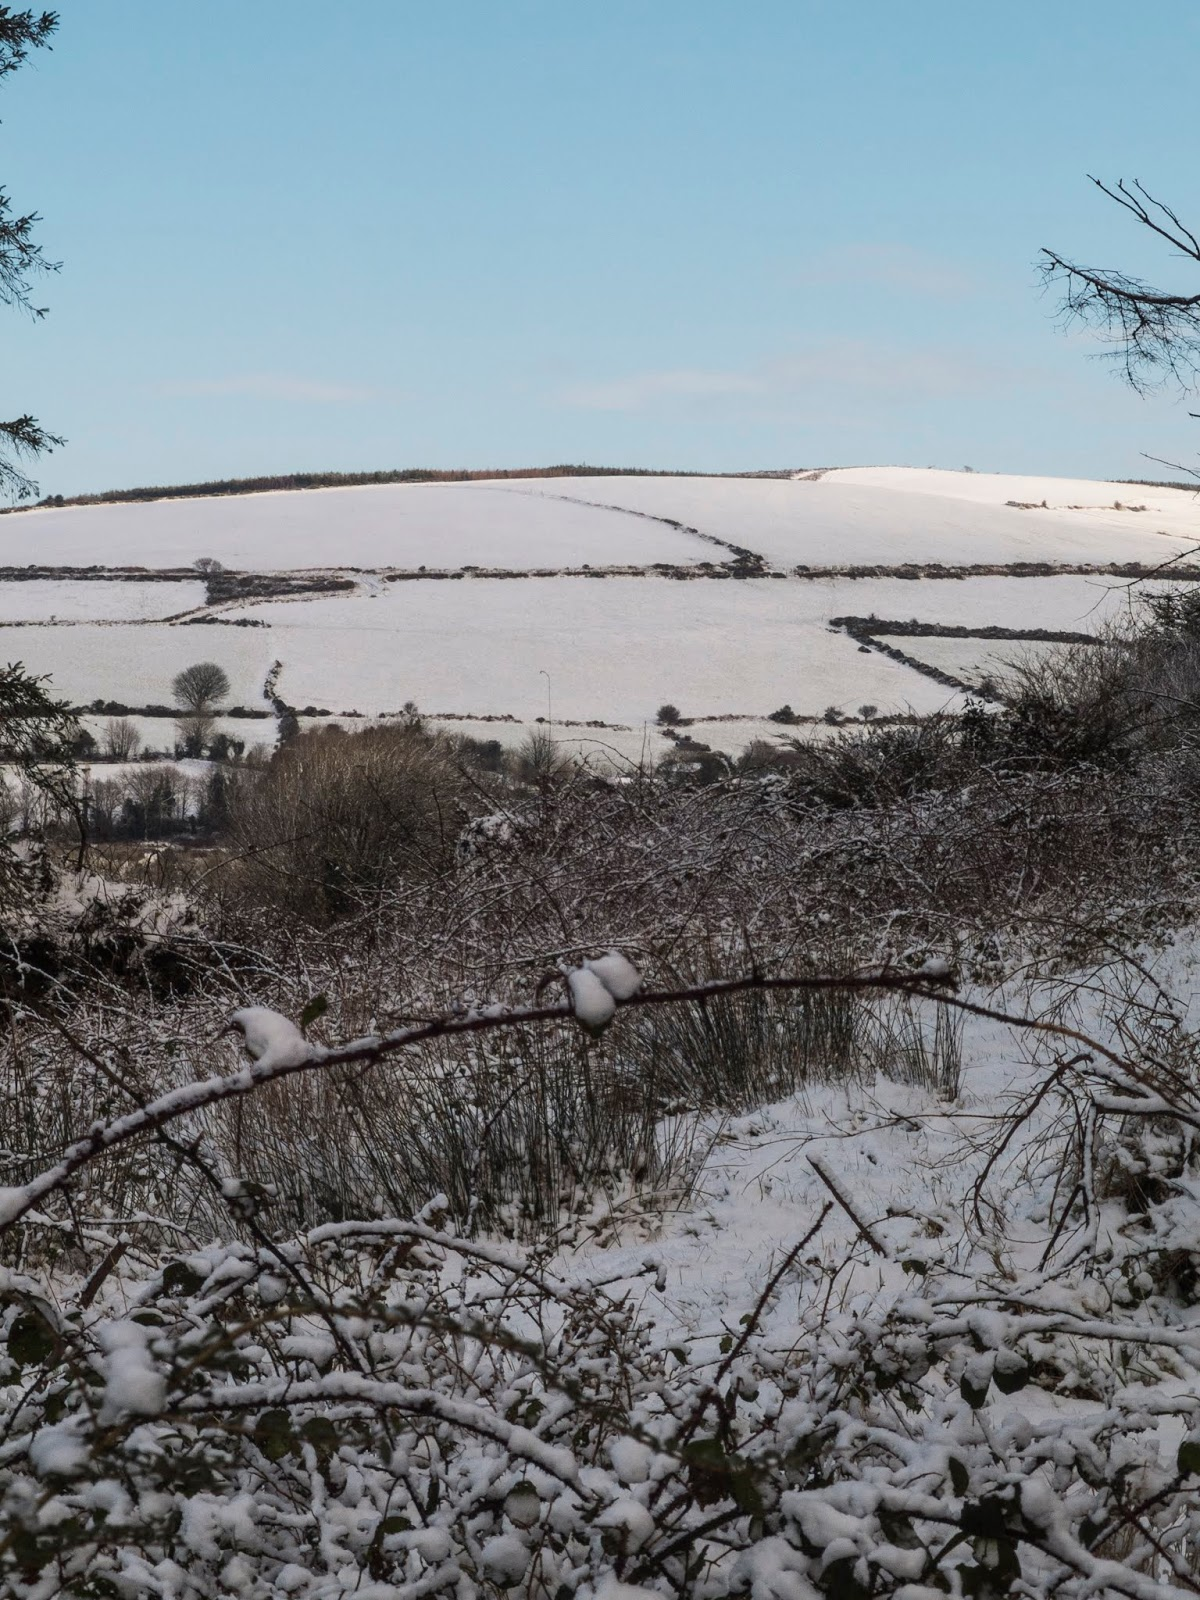 A mountain side covered in snow with brambles and grasses in the foreground.